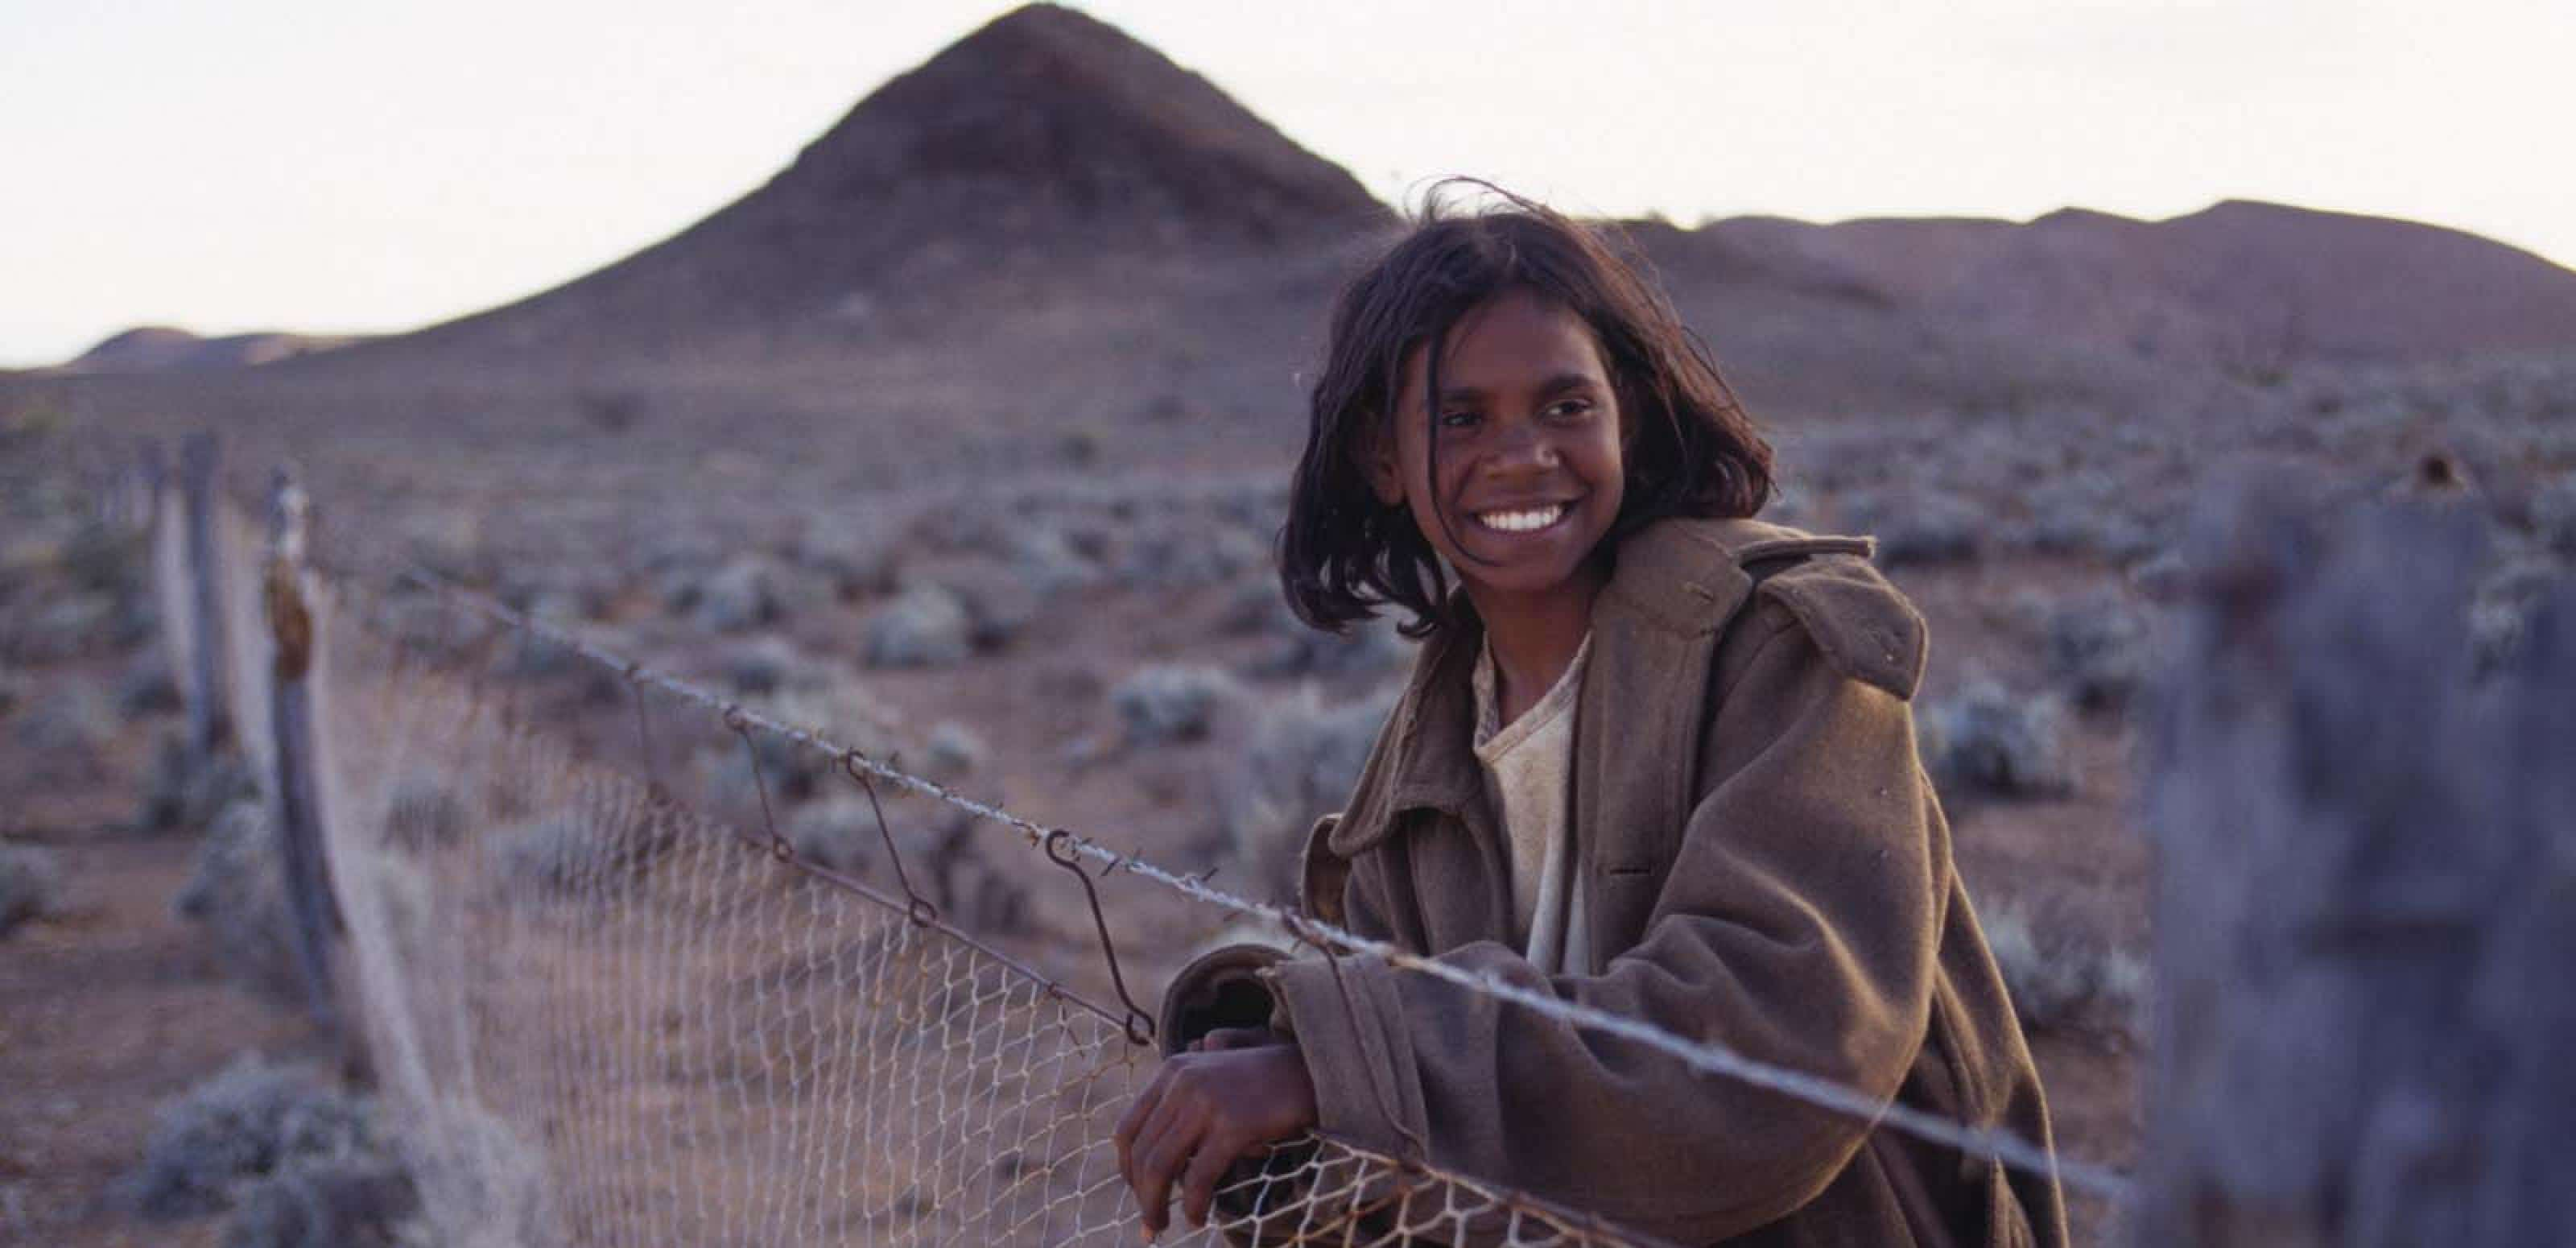 Rabbit proof fence (National Film and Sound Archive of Australia, n.d.)